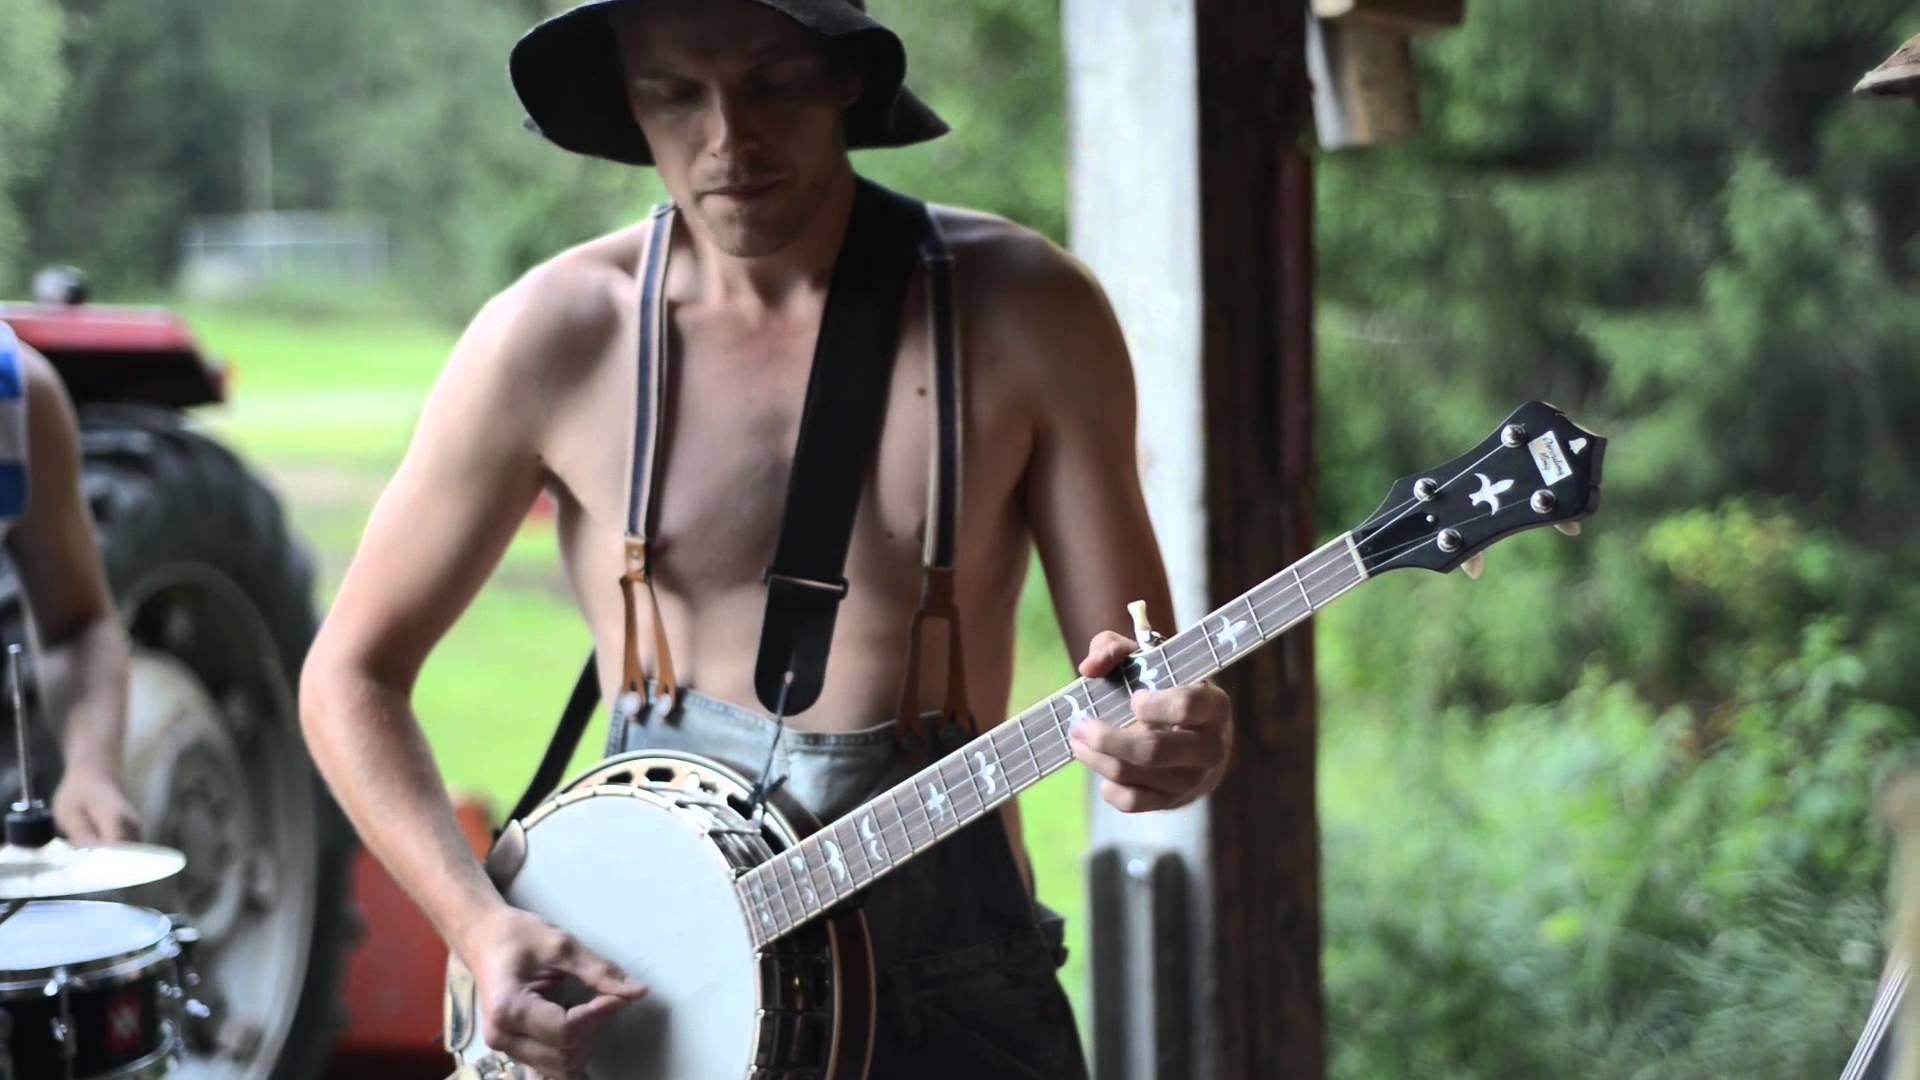 The Steve 'N' Seagulls Perform a Live Bluegrass Cover of AC/DC's